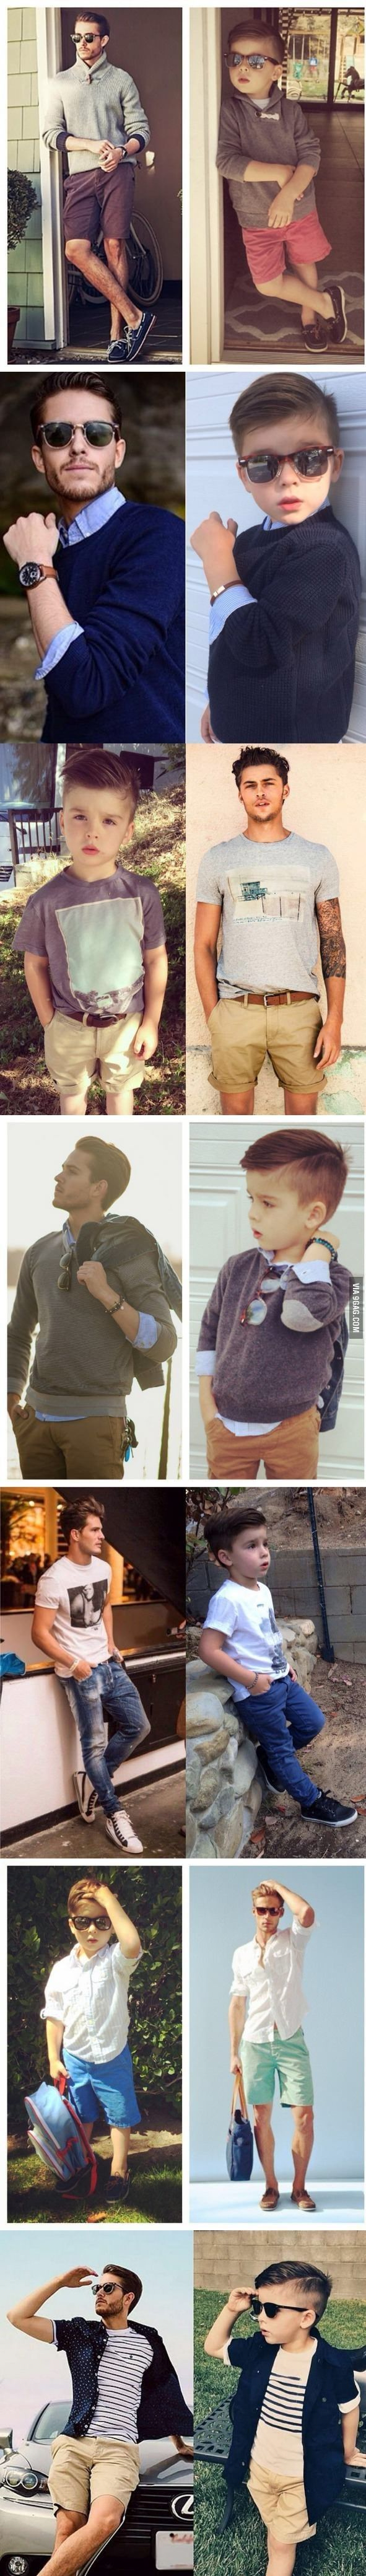 Baba Oğul Kombinleri / Daddy and Son Match #father #fashion #menfashion #mentrends #kids #kidsstyle #menstyle